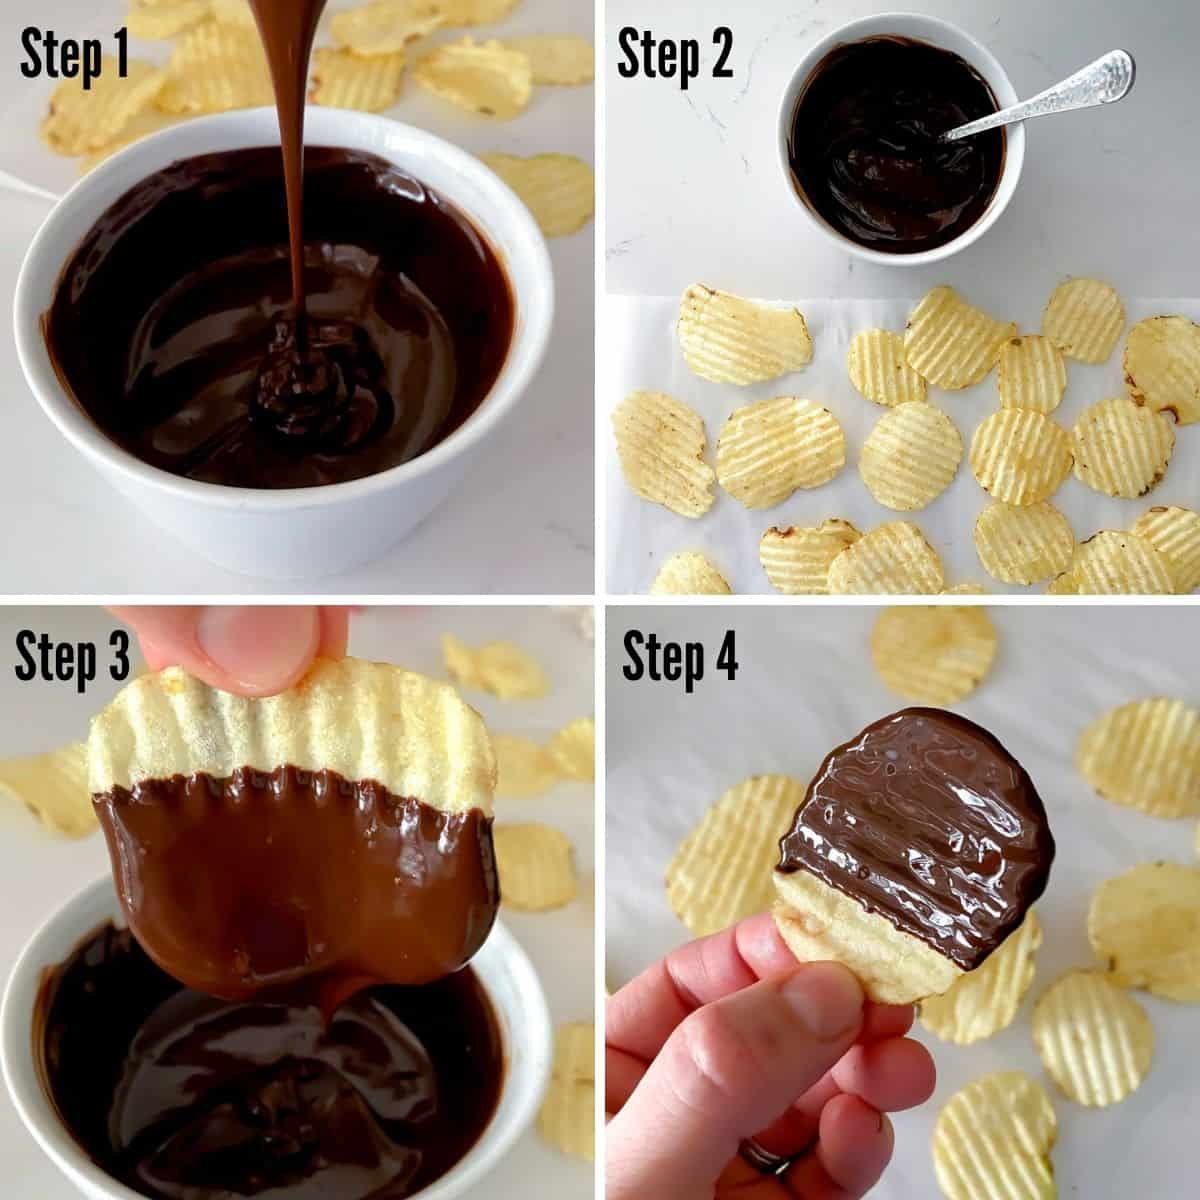 steps to make homemade chocolate covered potato chips showing dipping my chip into melted chocolate.